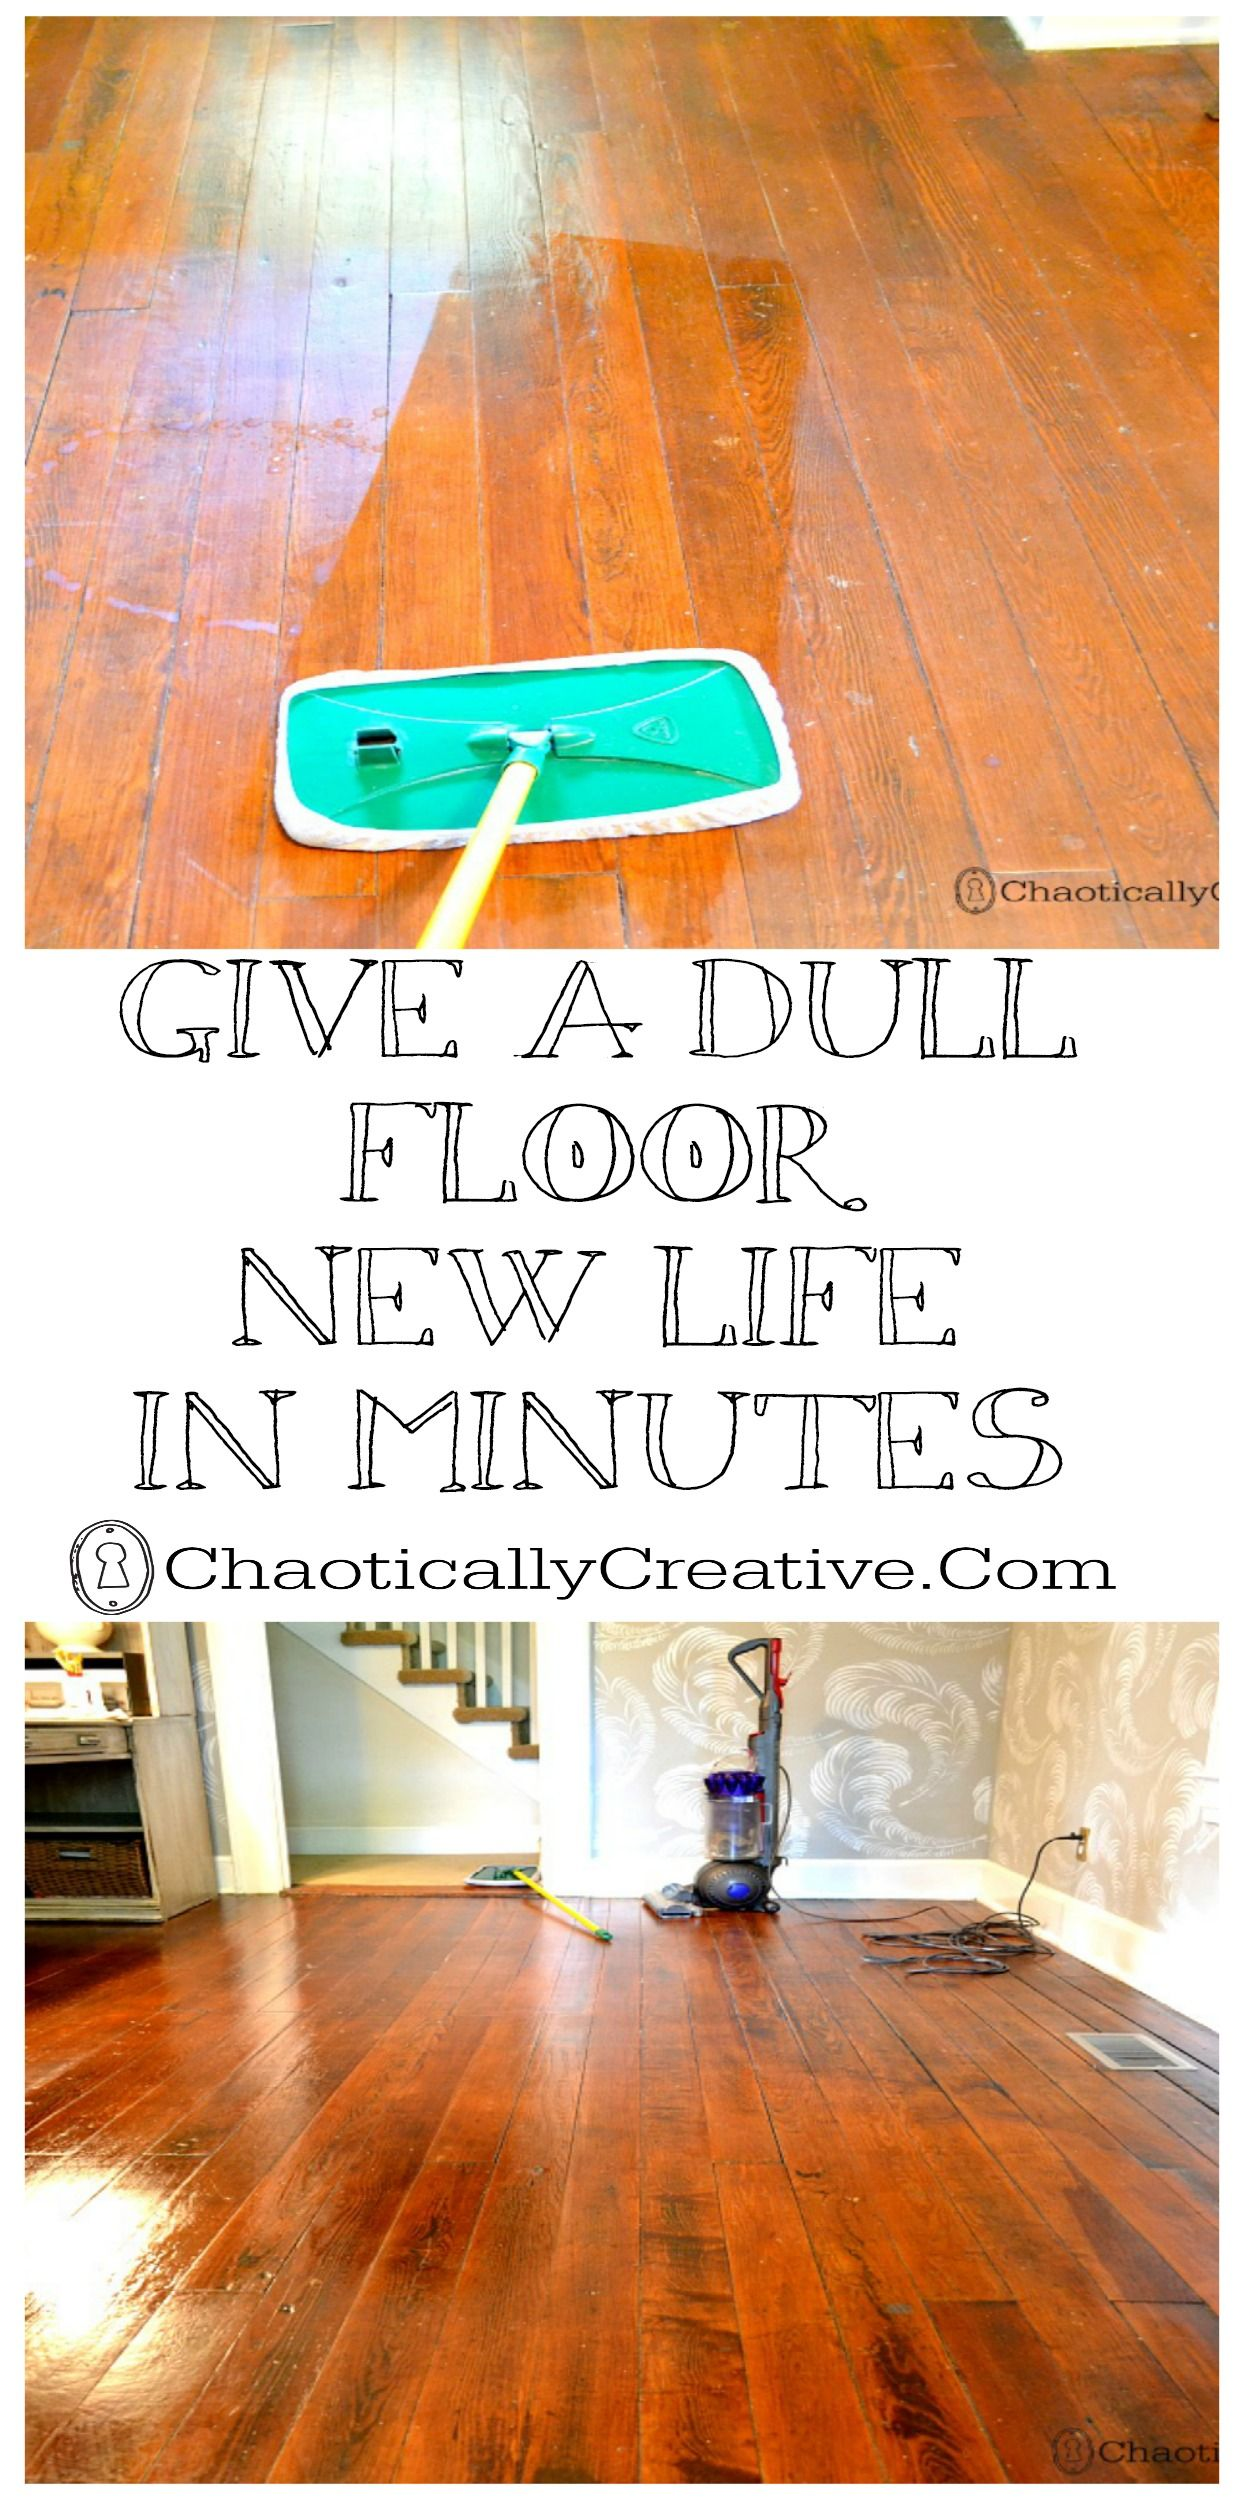 Shine Dull Floors In Minutes Chaotically Creative Cleaning Hacks Flooring House Cleaning Tips